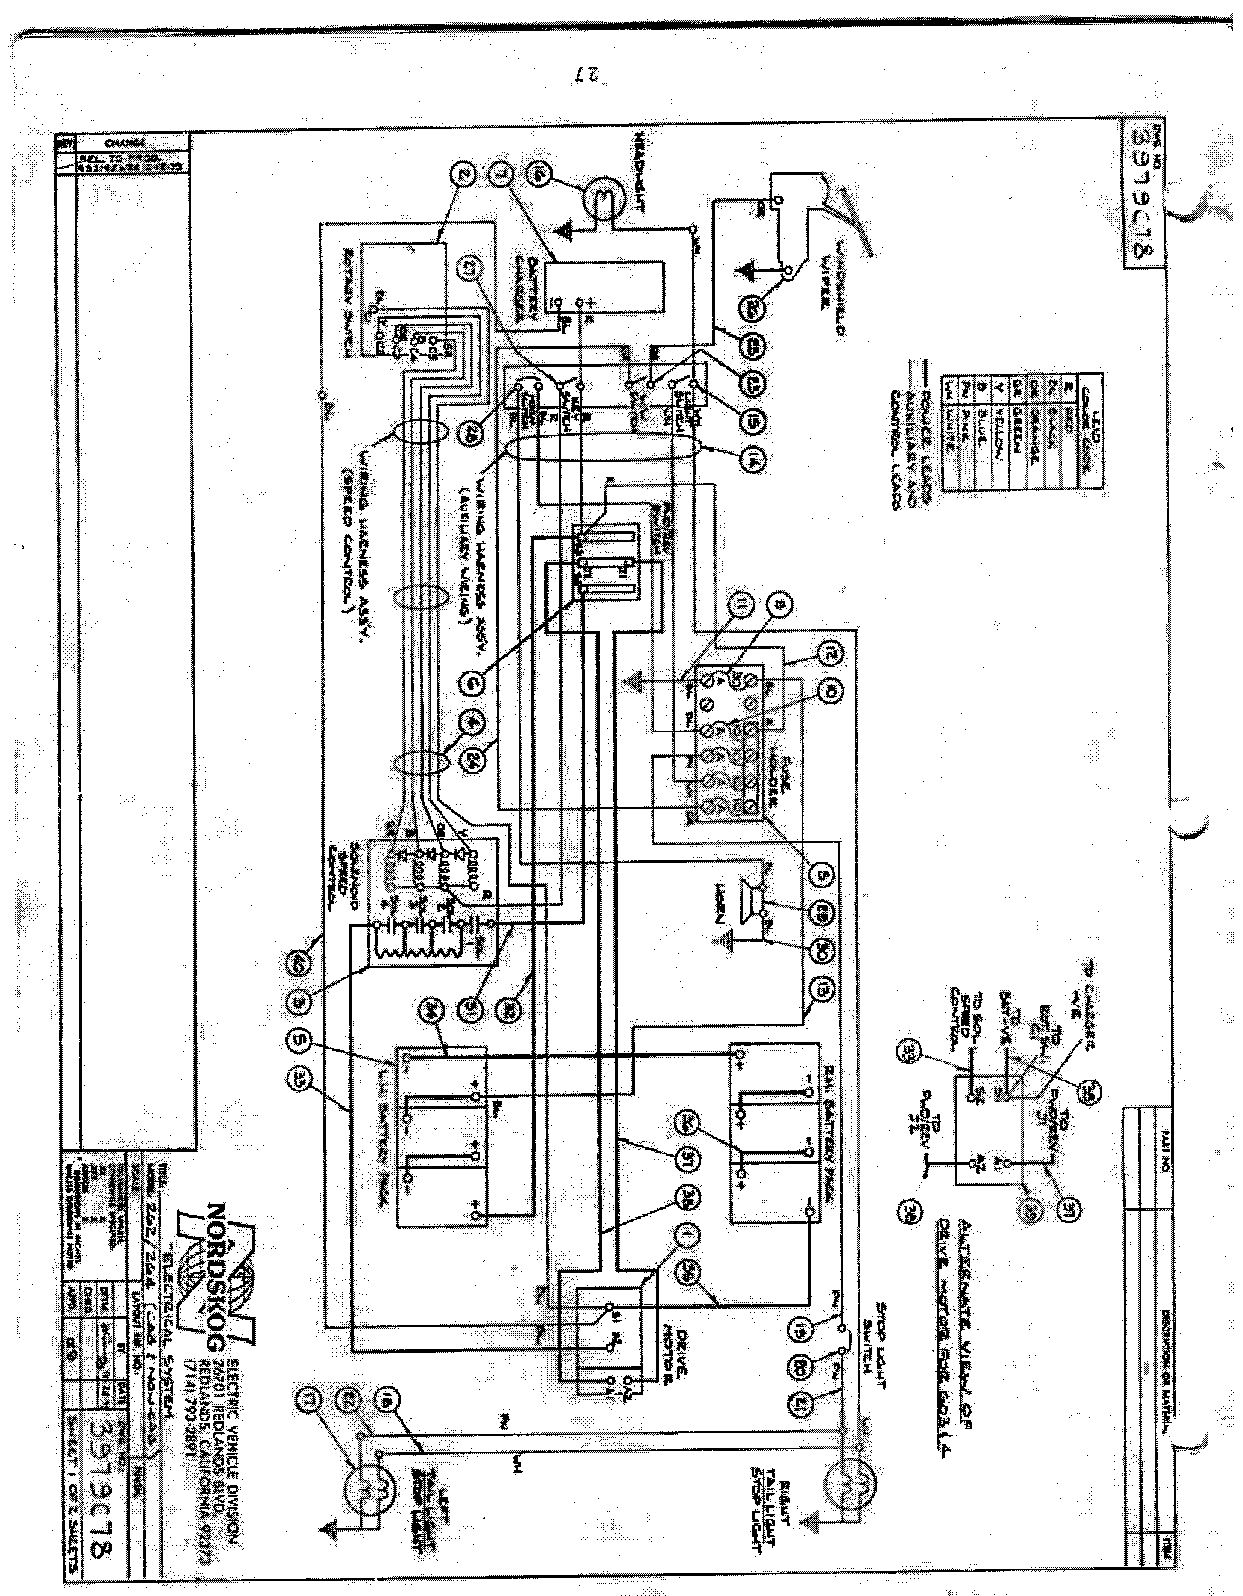 [SCHEMATICS_4FD]  055D9 Ez Go Controller Wiring Diagram | Wiring Library | Free Download Iceman Wiring Diagram |  | Wiring Library